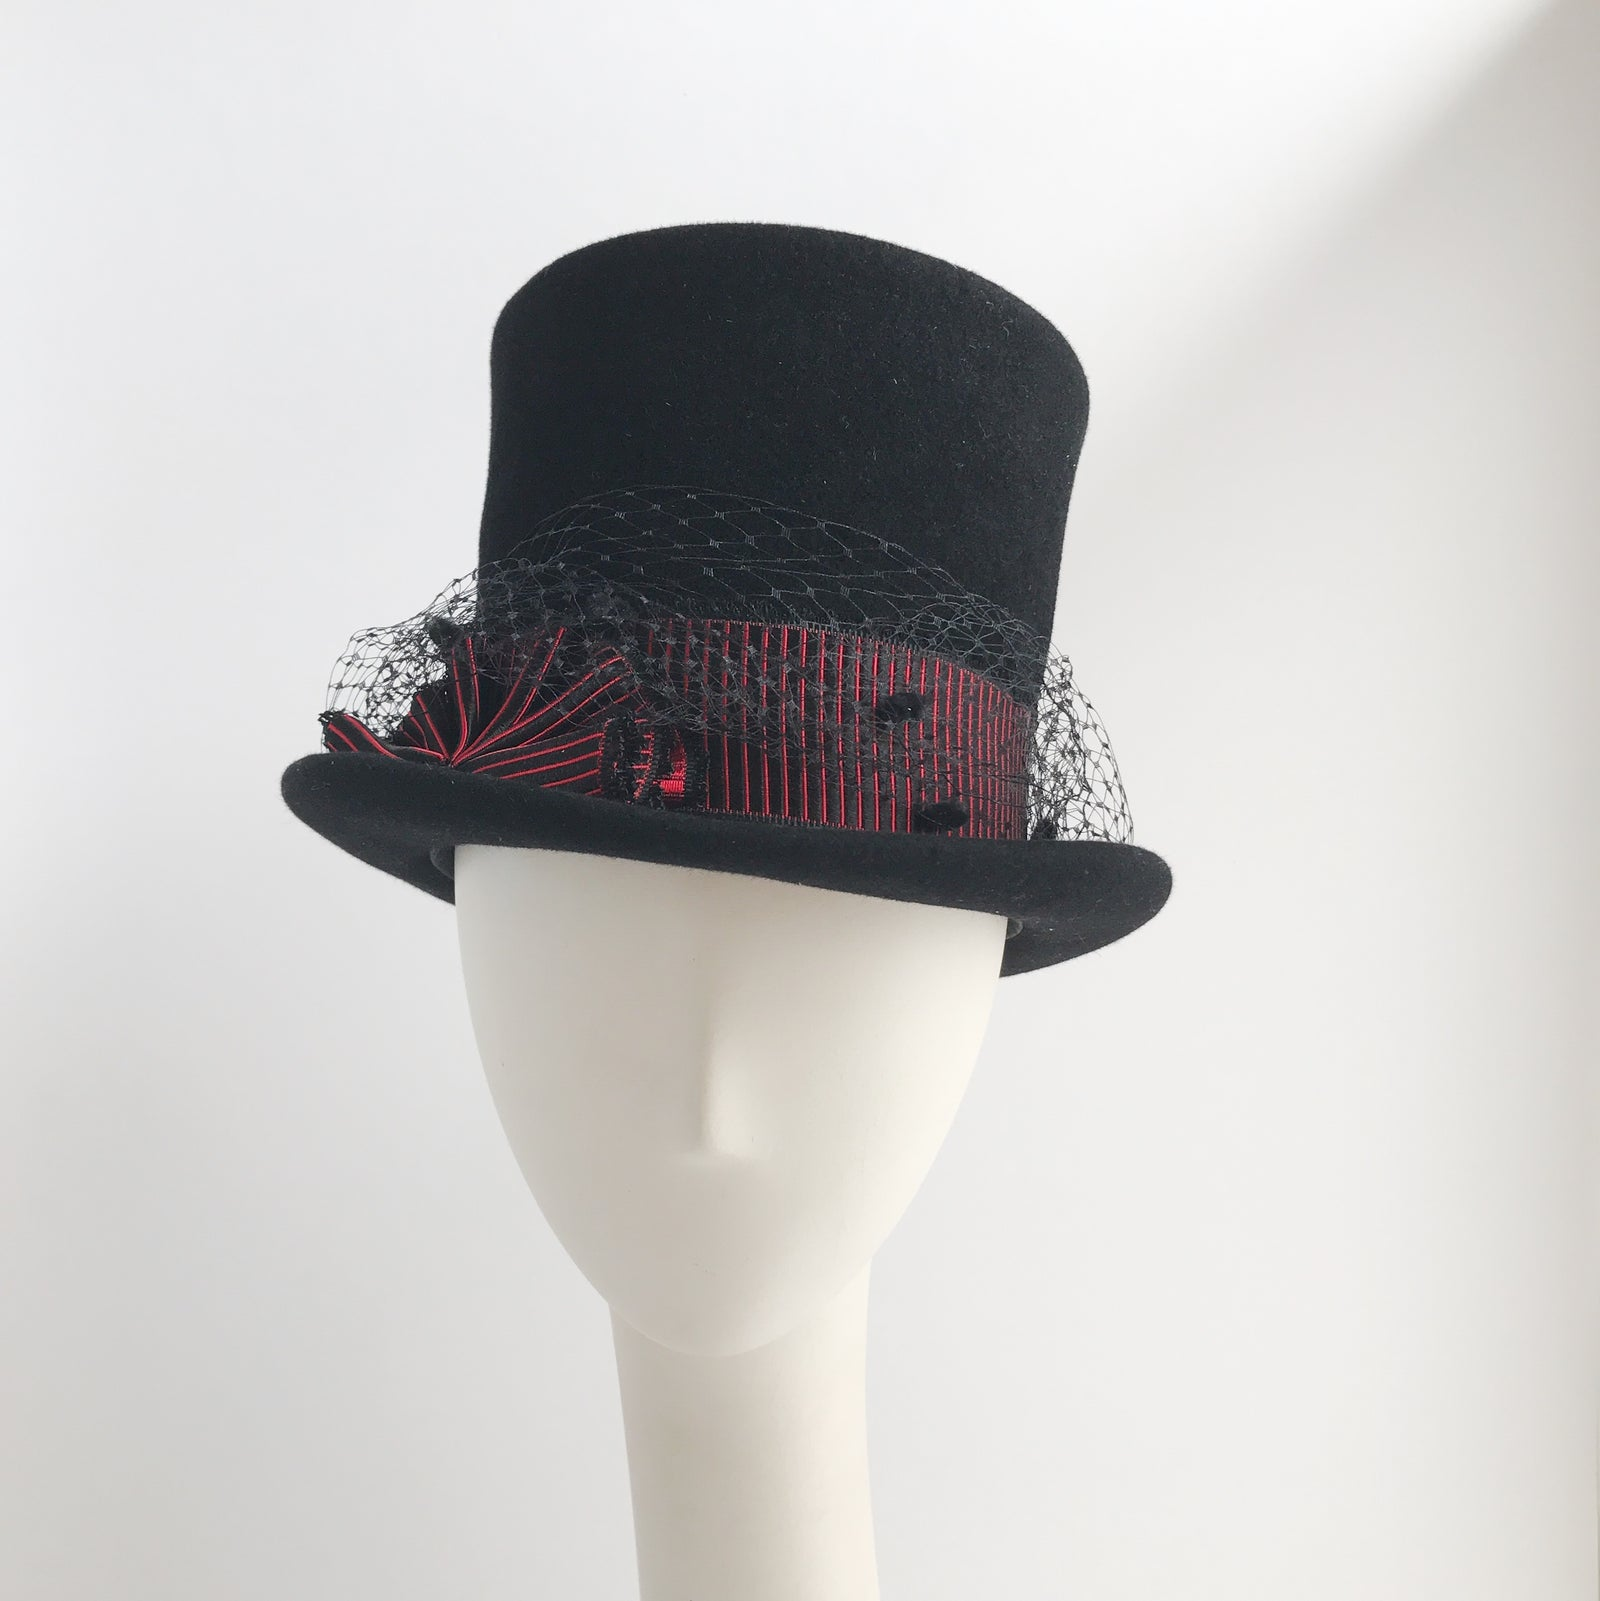 5387f47cbb2a9 Black Marlin Top Hat with Veil and Vintage Ribbon – Ignatius Hats